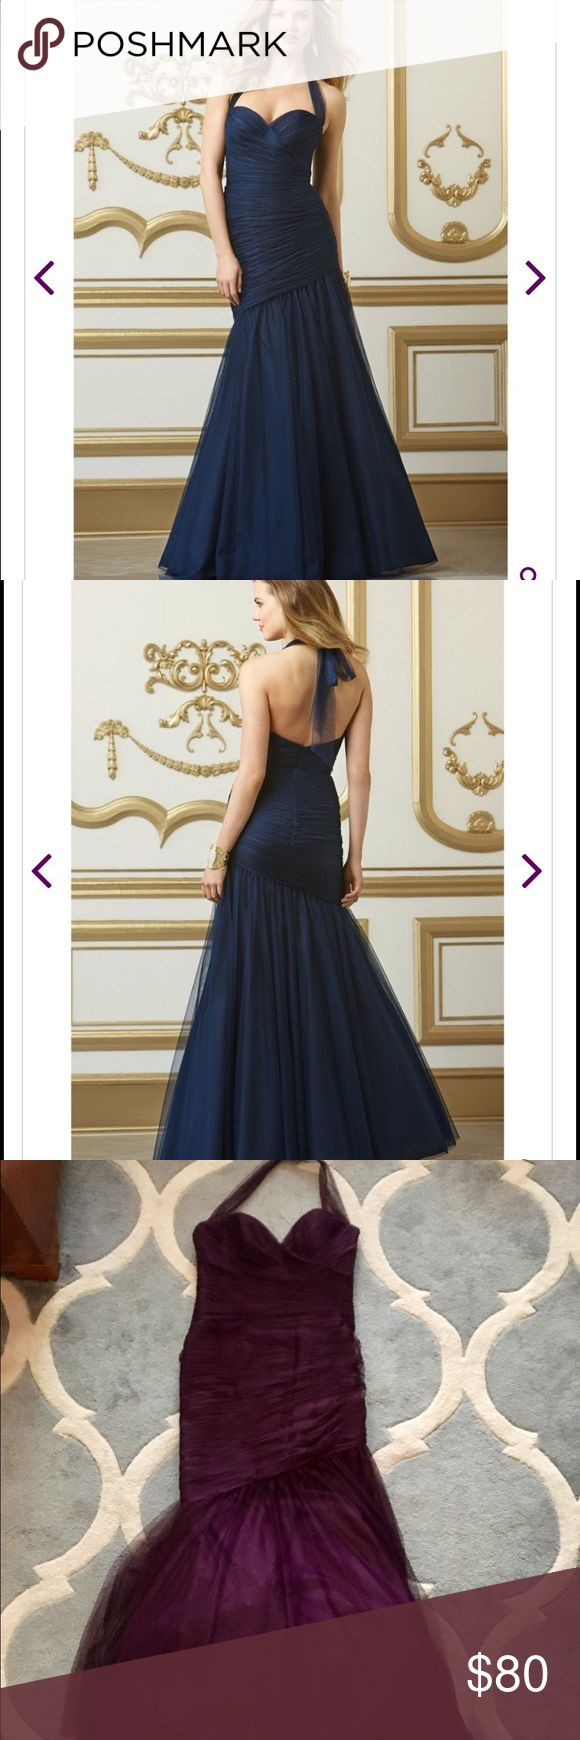 Wtoo 501 Mermaid Bridesmaid Dress in Eggplant The Watters WTOO 501 bridesmaid dress will please even the pickiest bridesmaid. From the plunging sweetheart neckline to the meticulously shirred bodice, this gown has all the expensive details of far costlier dress. The halter style neck ties in the back into a generous bow. Diagonal dropped waist has a mermaid flare at the bottom. Fit and flare silhouette flatters most any frame while the cleverly ruched bodice hides a multitude of sins. Made…